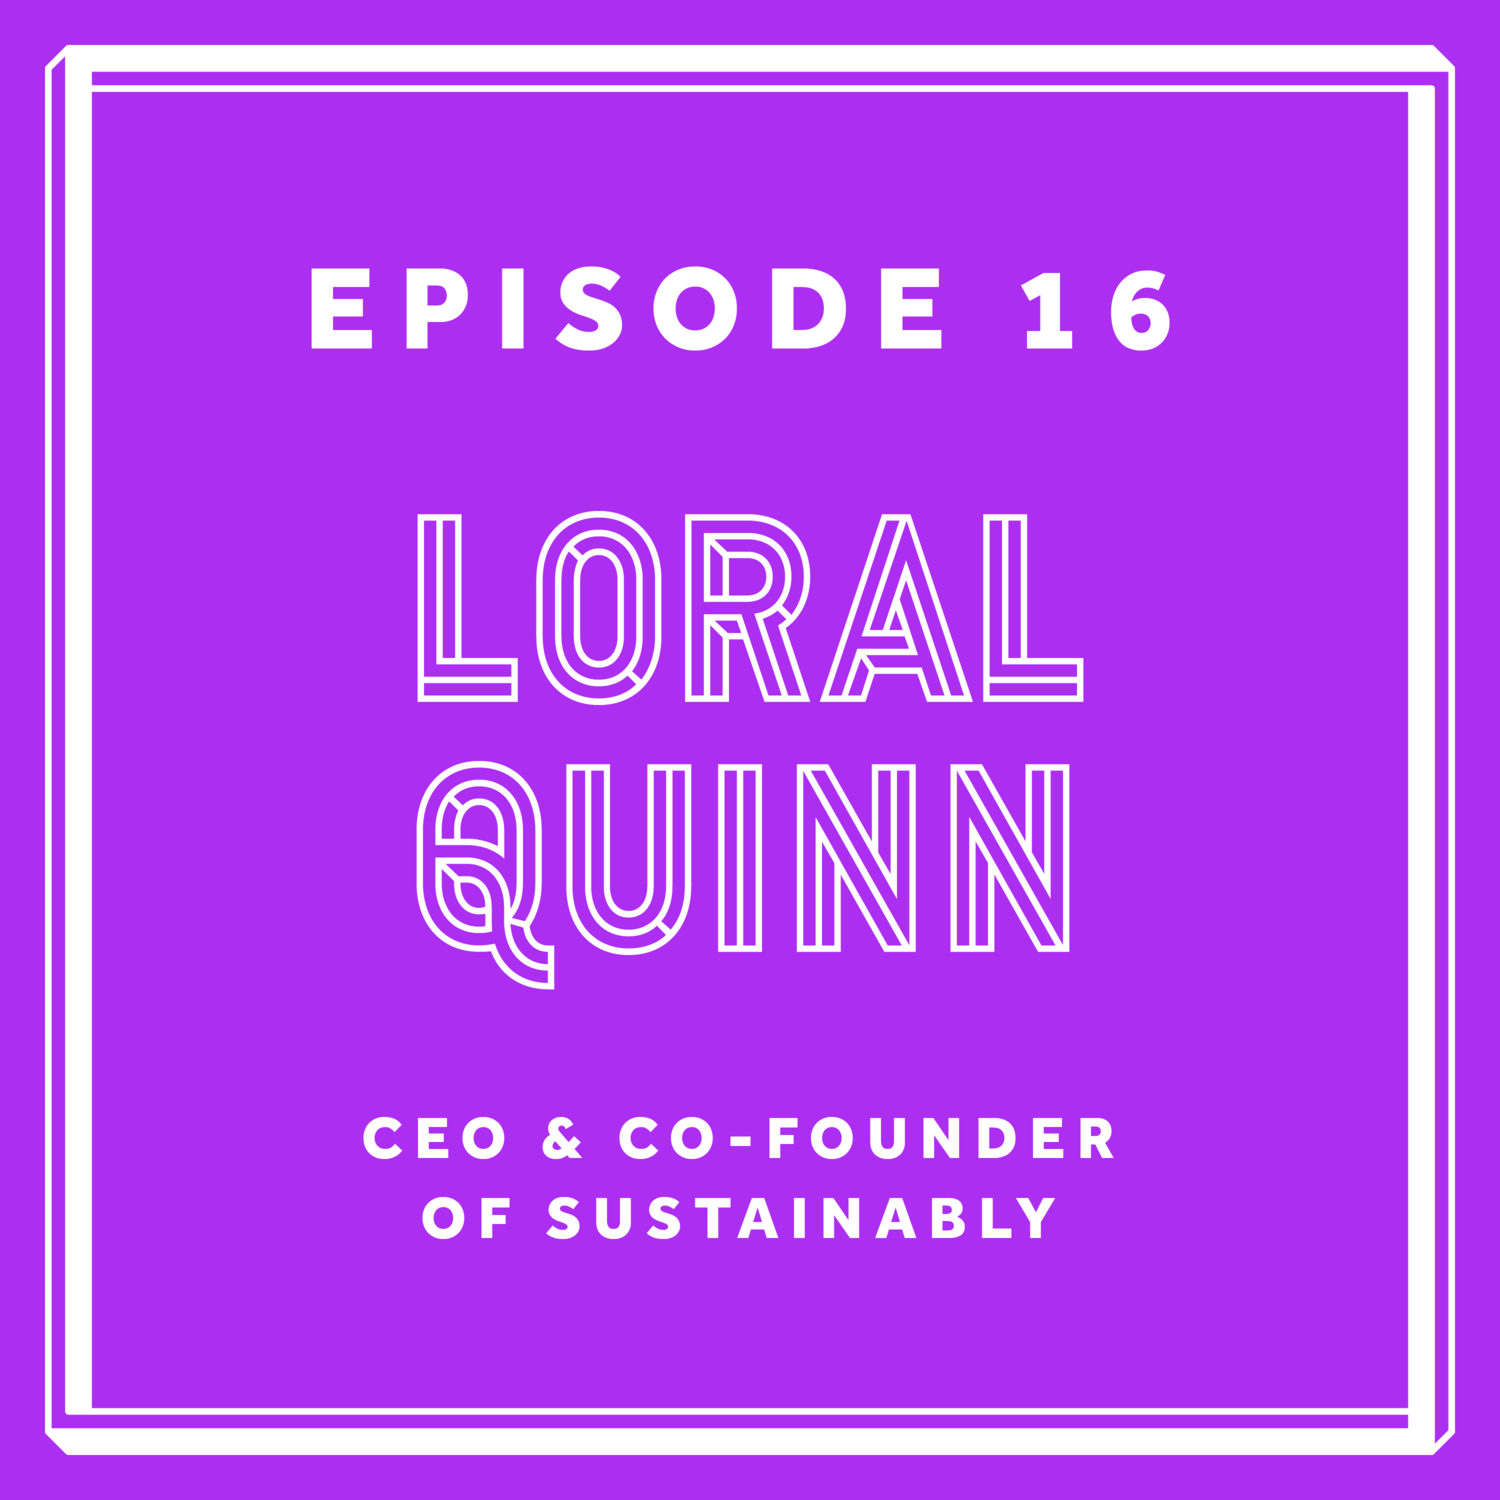 Episode 16: Loral Quinn - CEO & Co-Founder of Sustainably